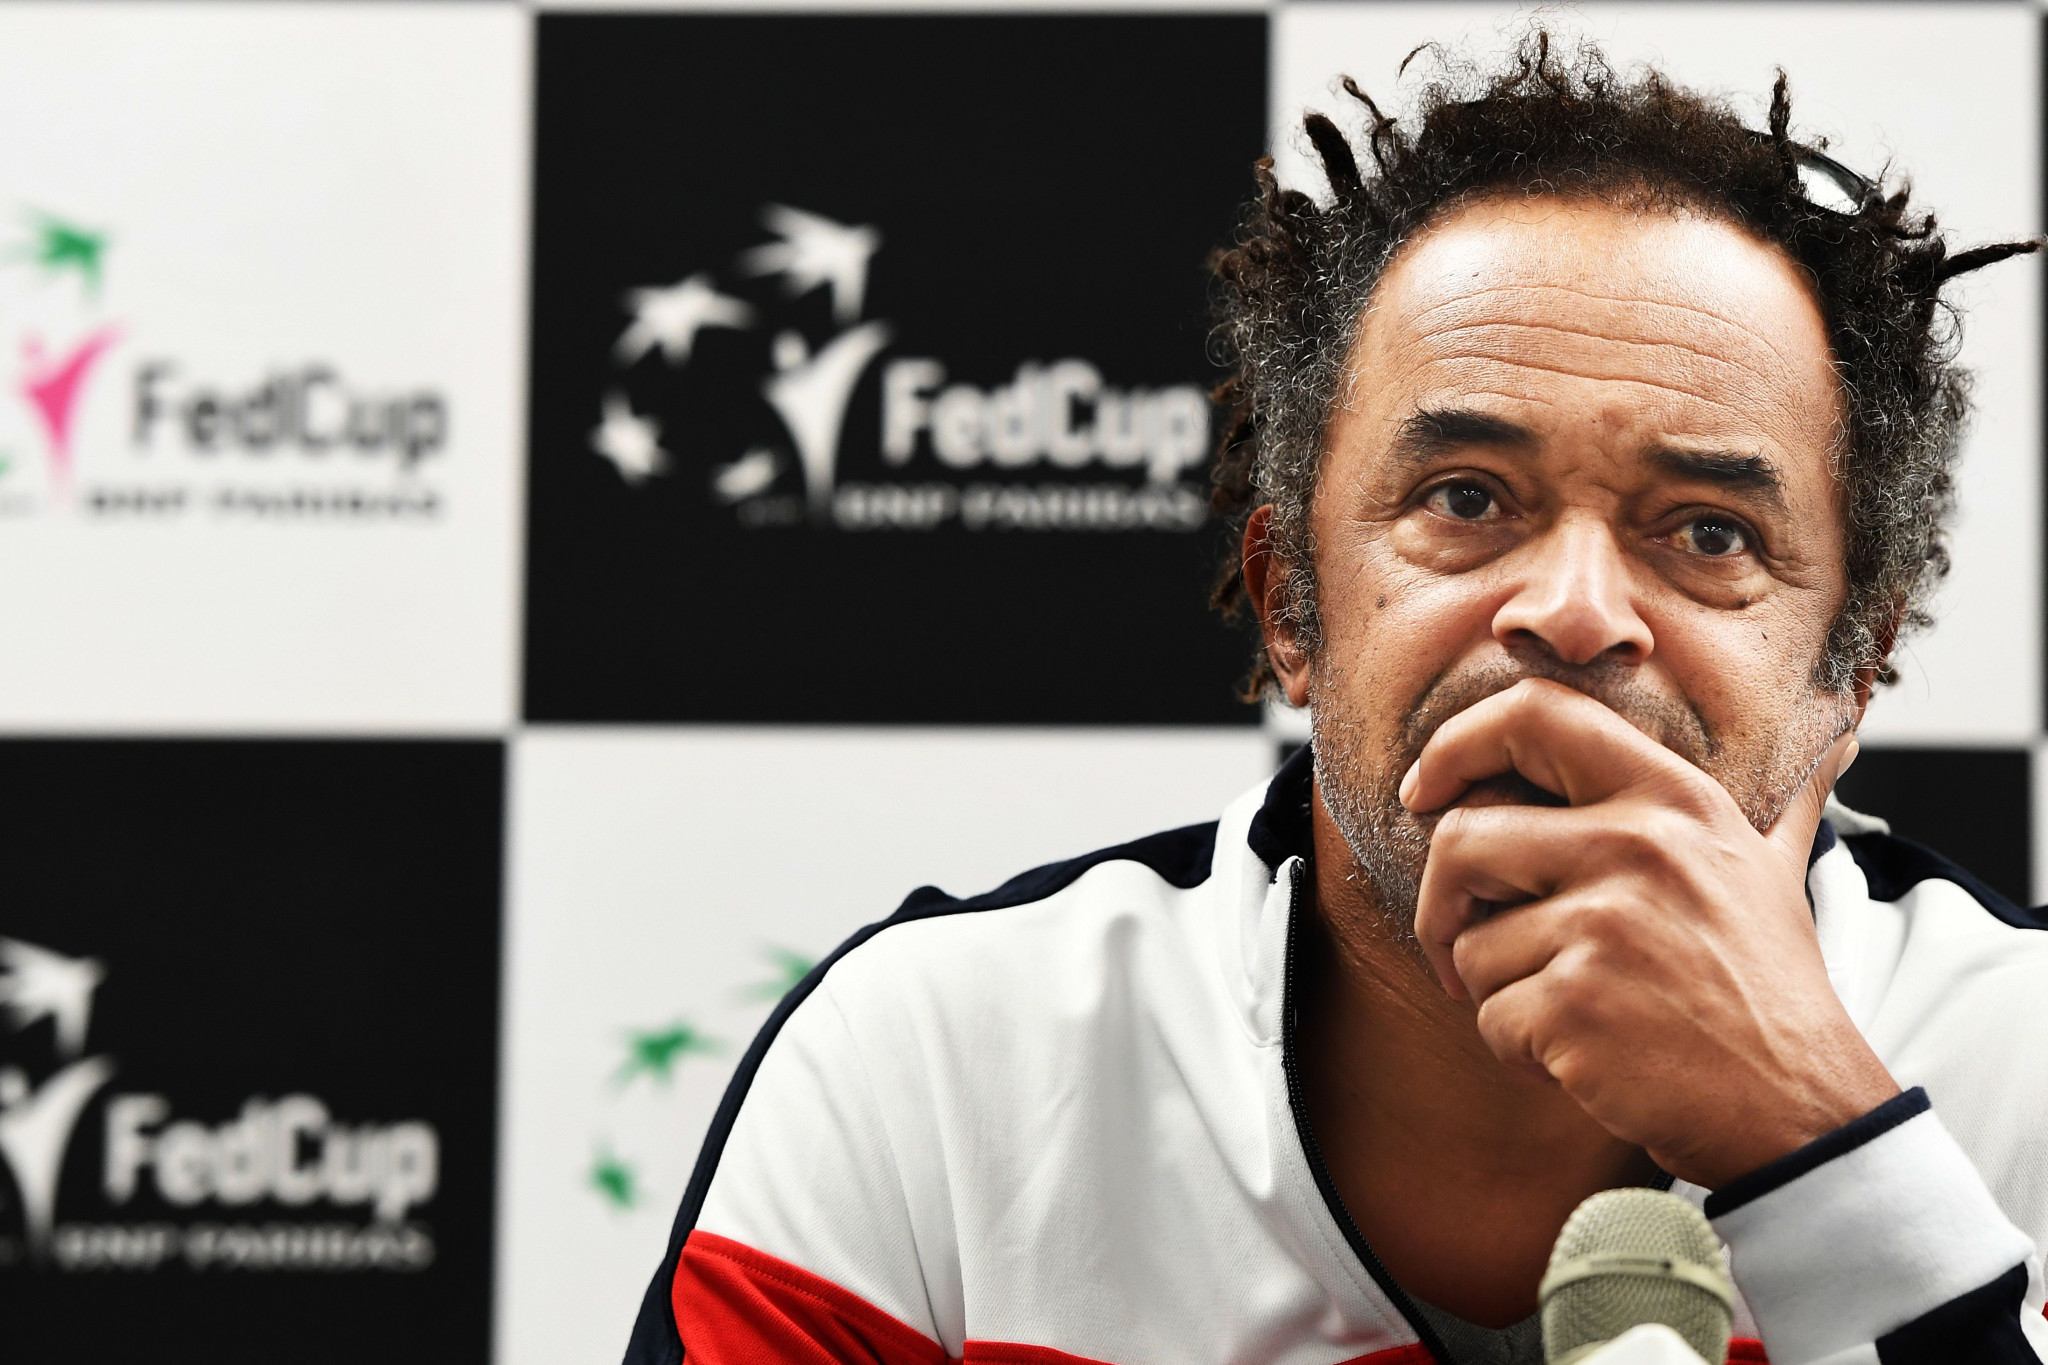 France's Davis Cup captain Yannick Noah 